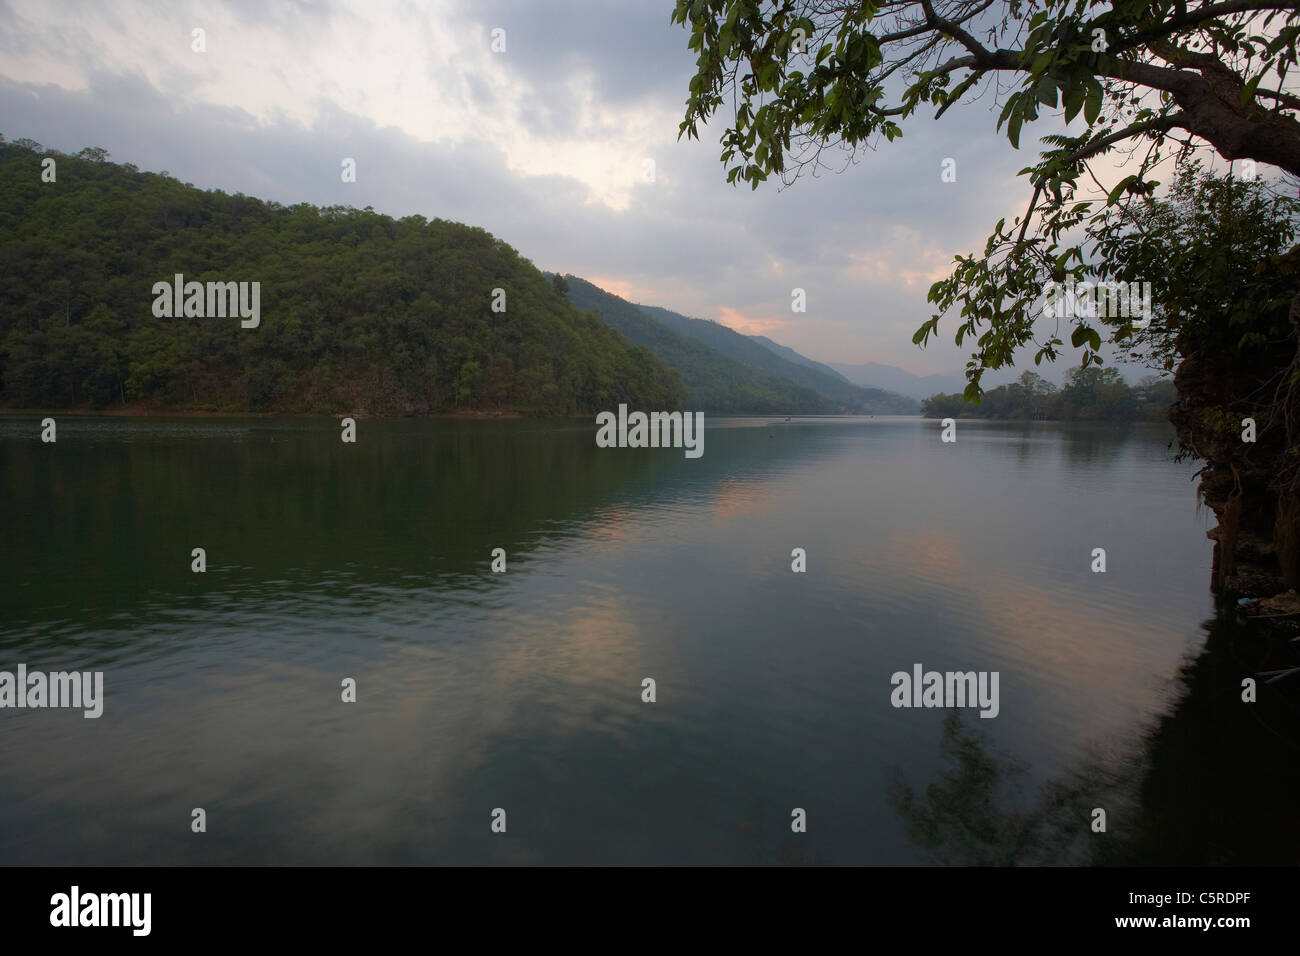 Lake Phewa (Fewa) Tal at sunset, Pokhara, Nepal, Asia - Stock Image